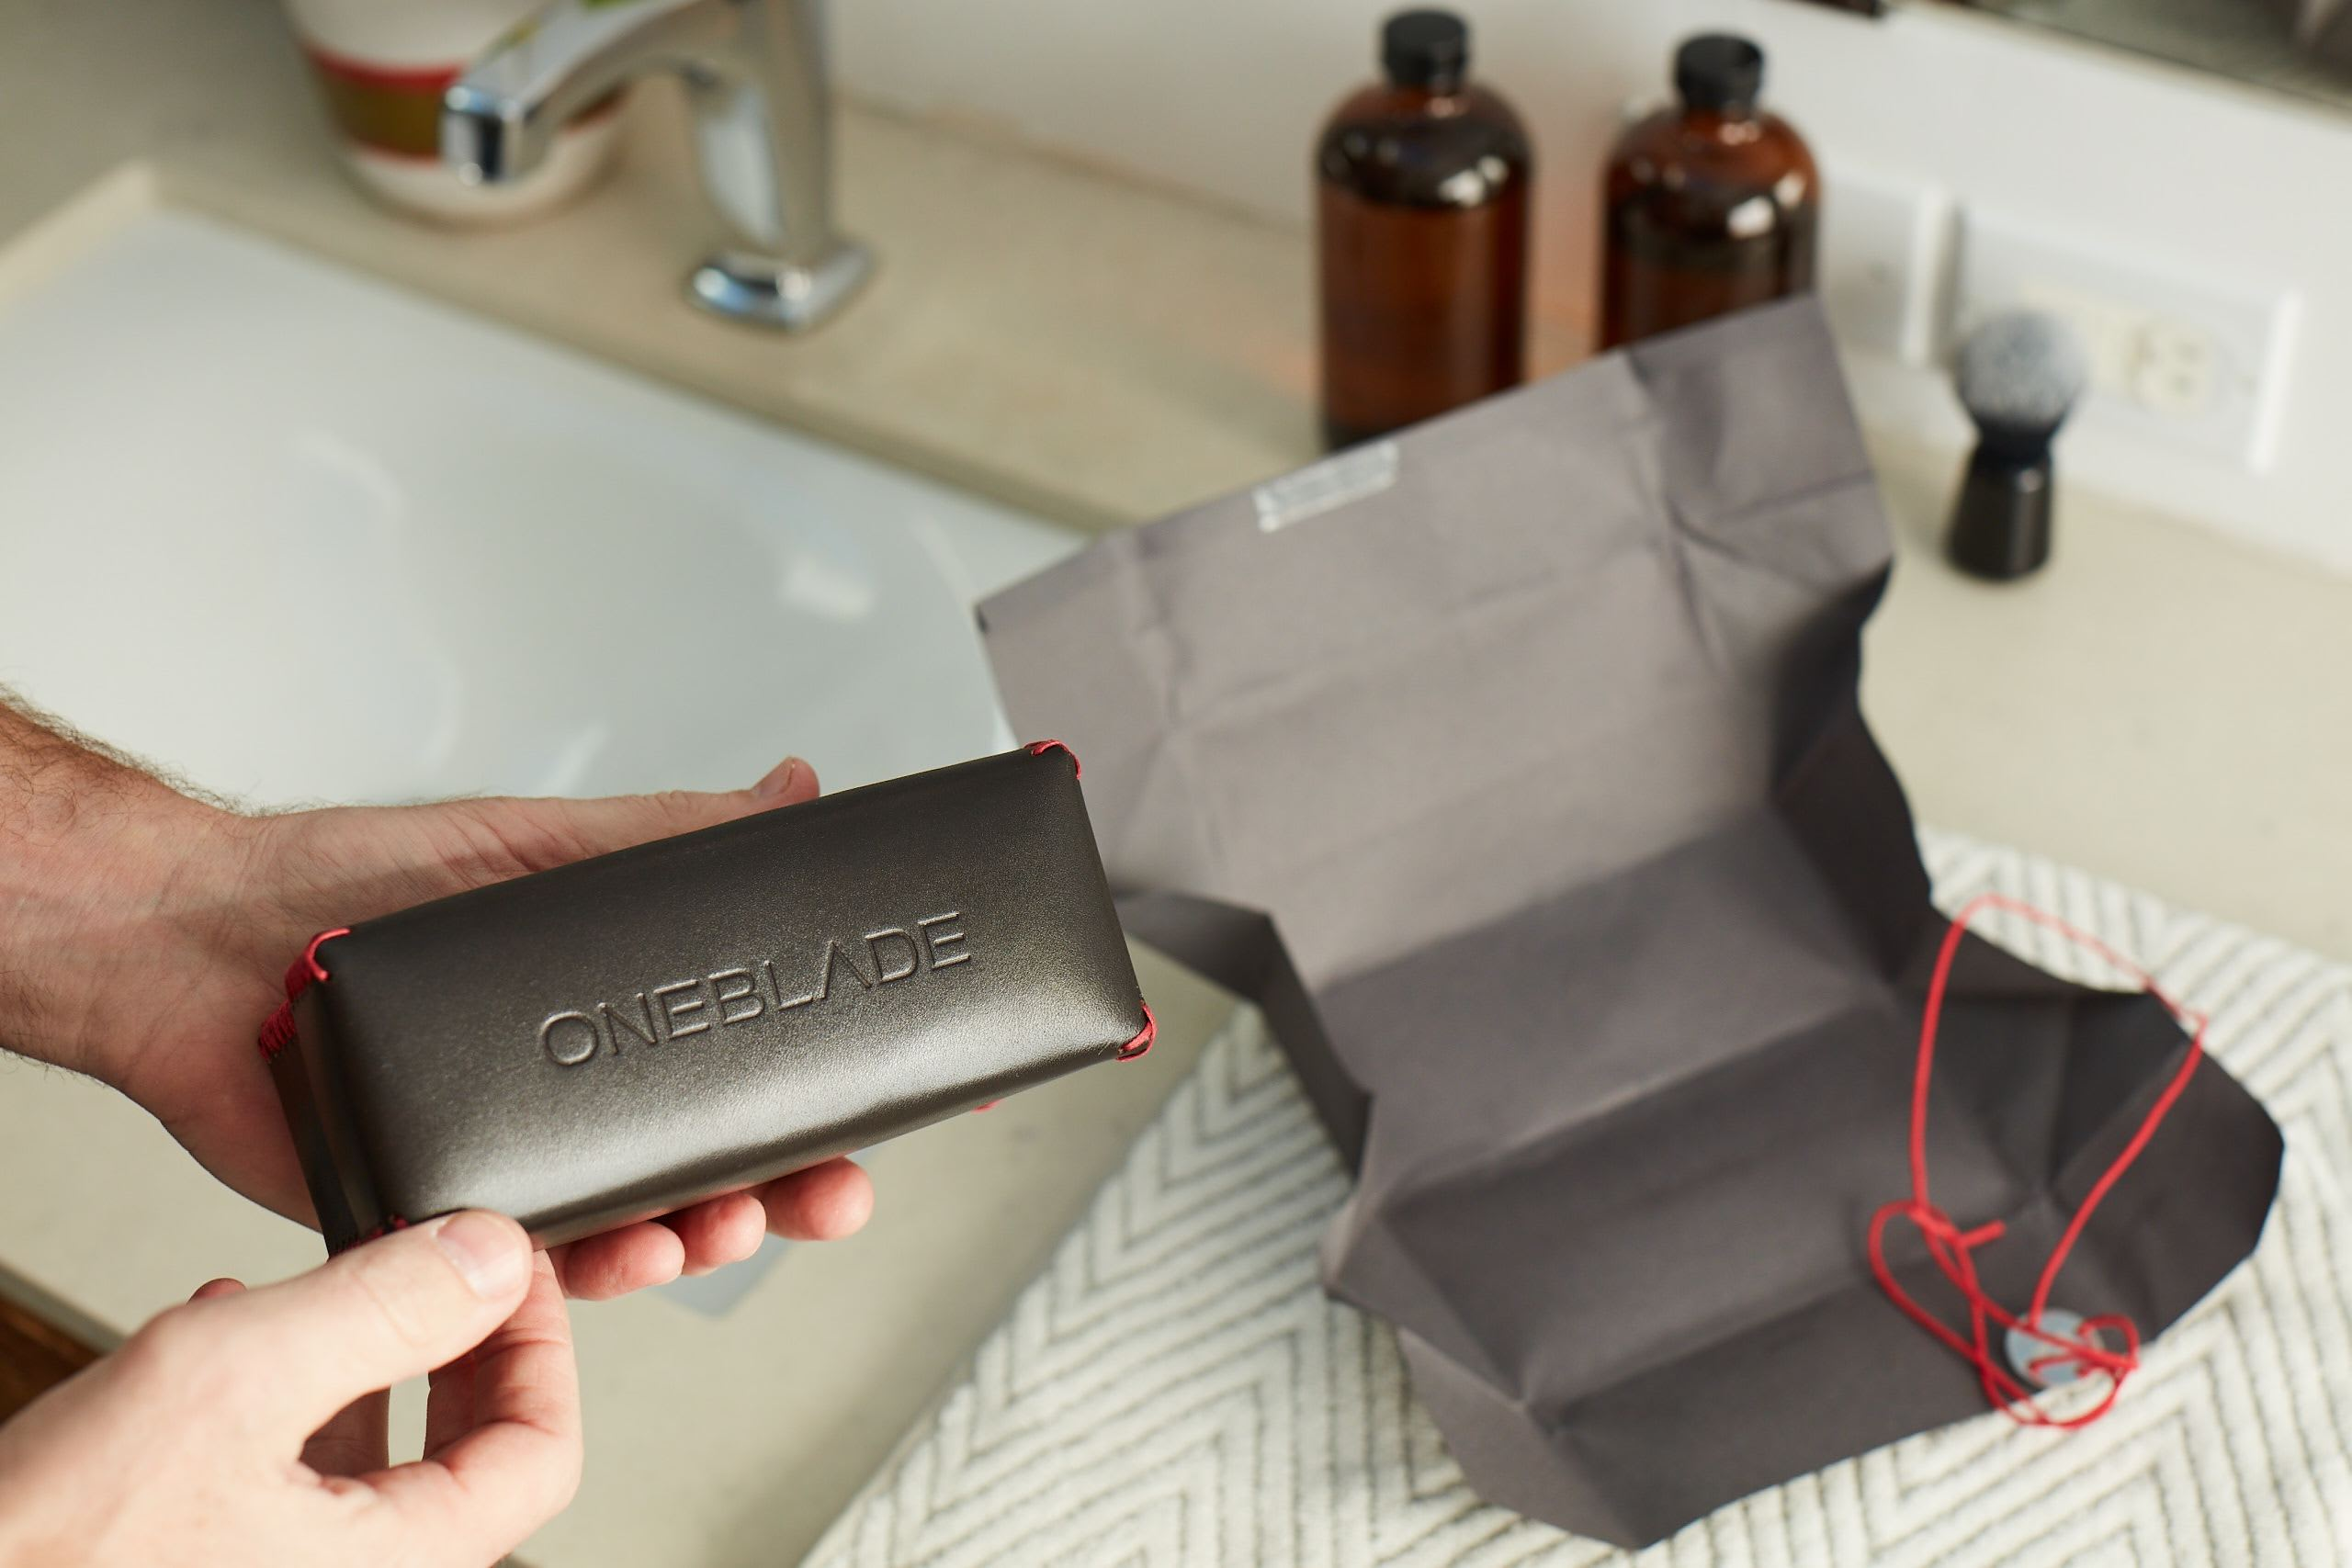 Hands holding a OneBlade case